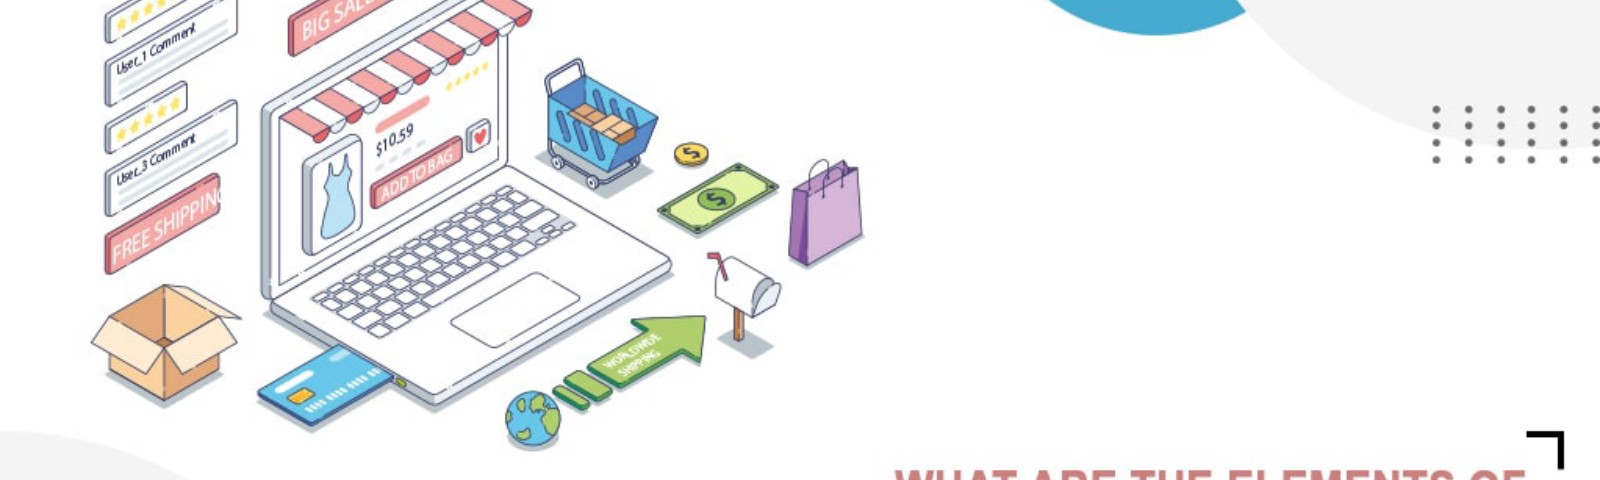 What are the Features of a Magento Ecommerce Website?